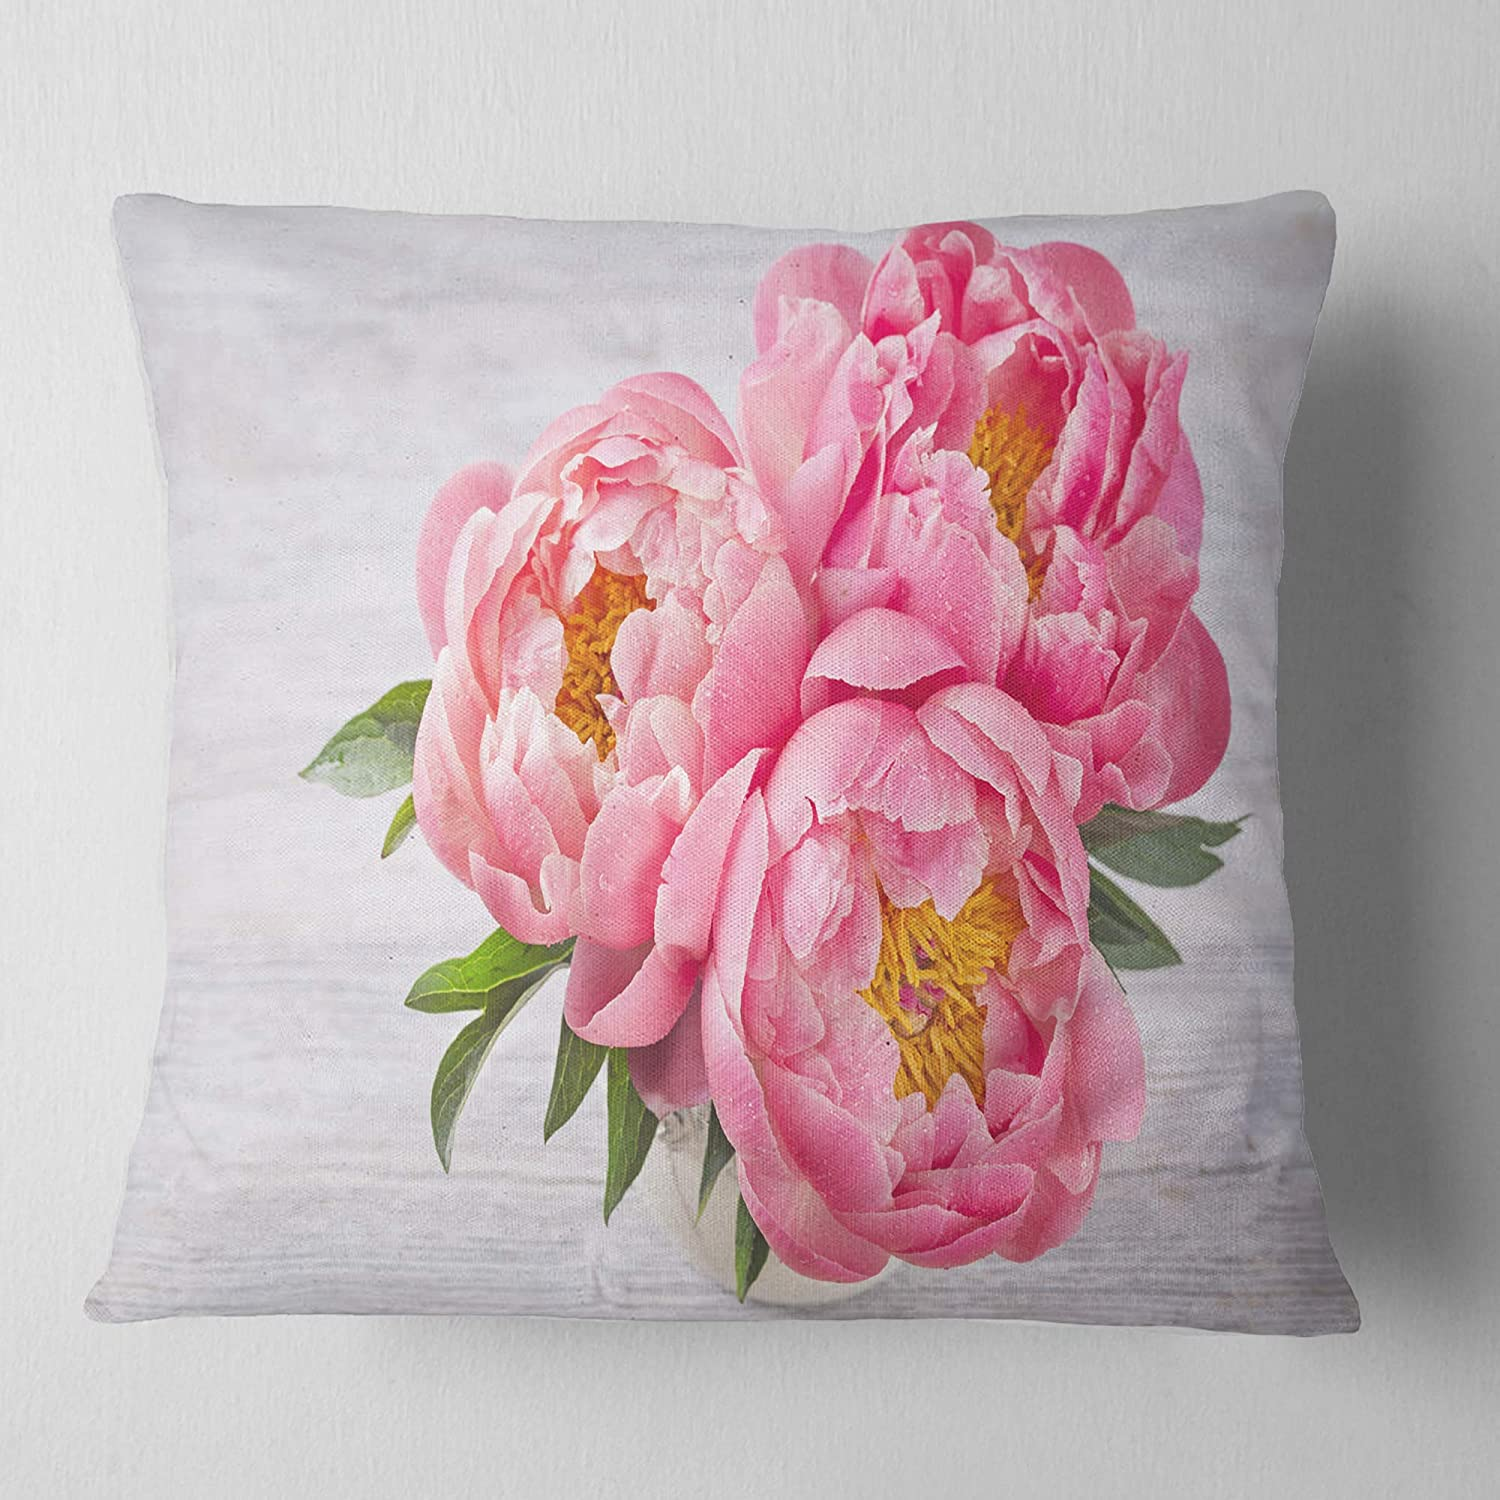 Designart CU14196-26-26 Bunch of Peony Flowers in Vase Floral Cushion Cover for Living Room in Sofa Throw Pillow 26 in Insert Printed On Both Side x 26 in